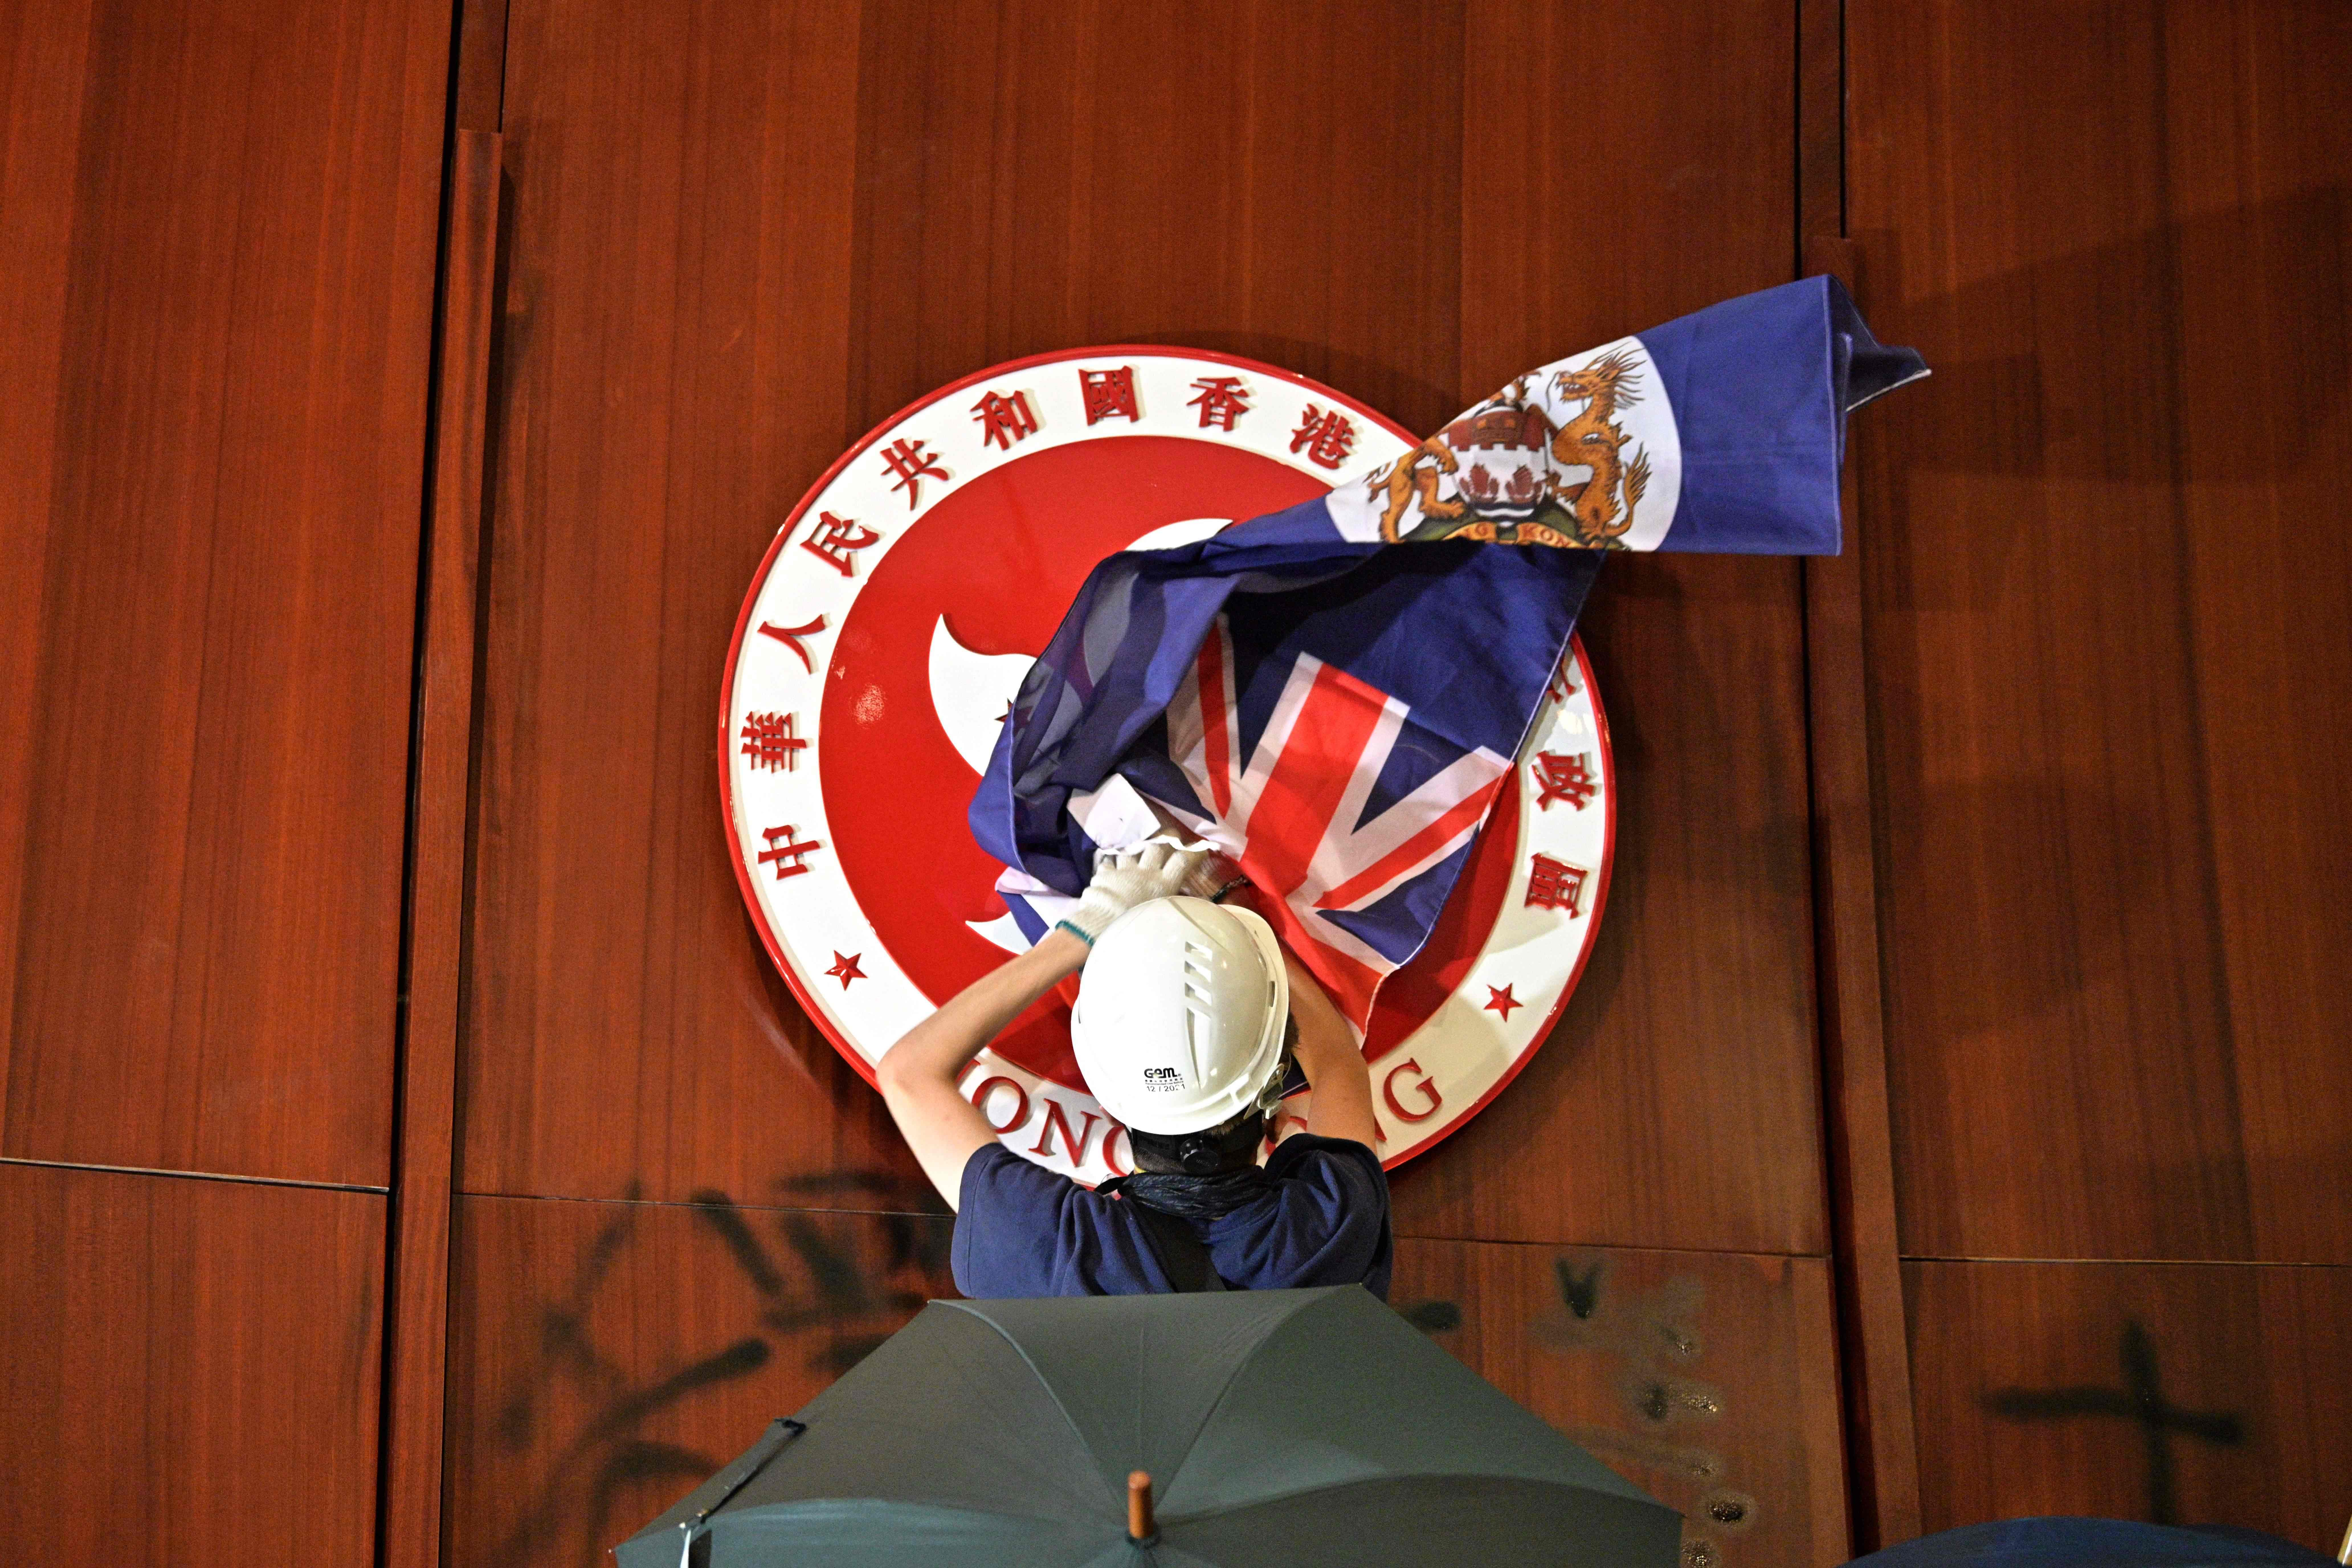 TOPSHOT - A protester attempts to cover the Hong Kong emblem with a British colonial flag after they broke into the government headquarters in Hong Kong on July 1, 2019, on the 22nd anniversary of the city's handover from Britain to China. - Anti-government protesters stormed Hong Kong's parliament building late on July 1 after successfully smashing their way through reinforced glass windows and prizing open metal shutters that were blocking their way. (Photo by Anthony WALLACE / AFP/ Getty Images)